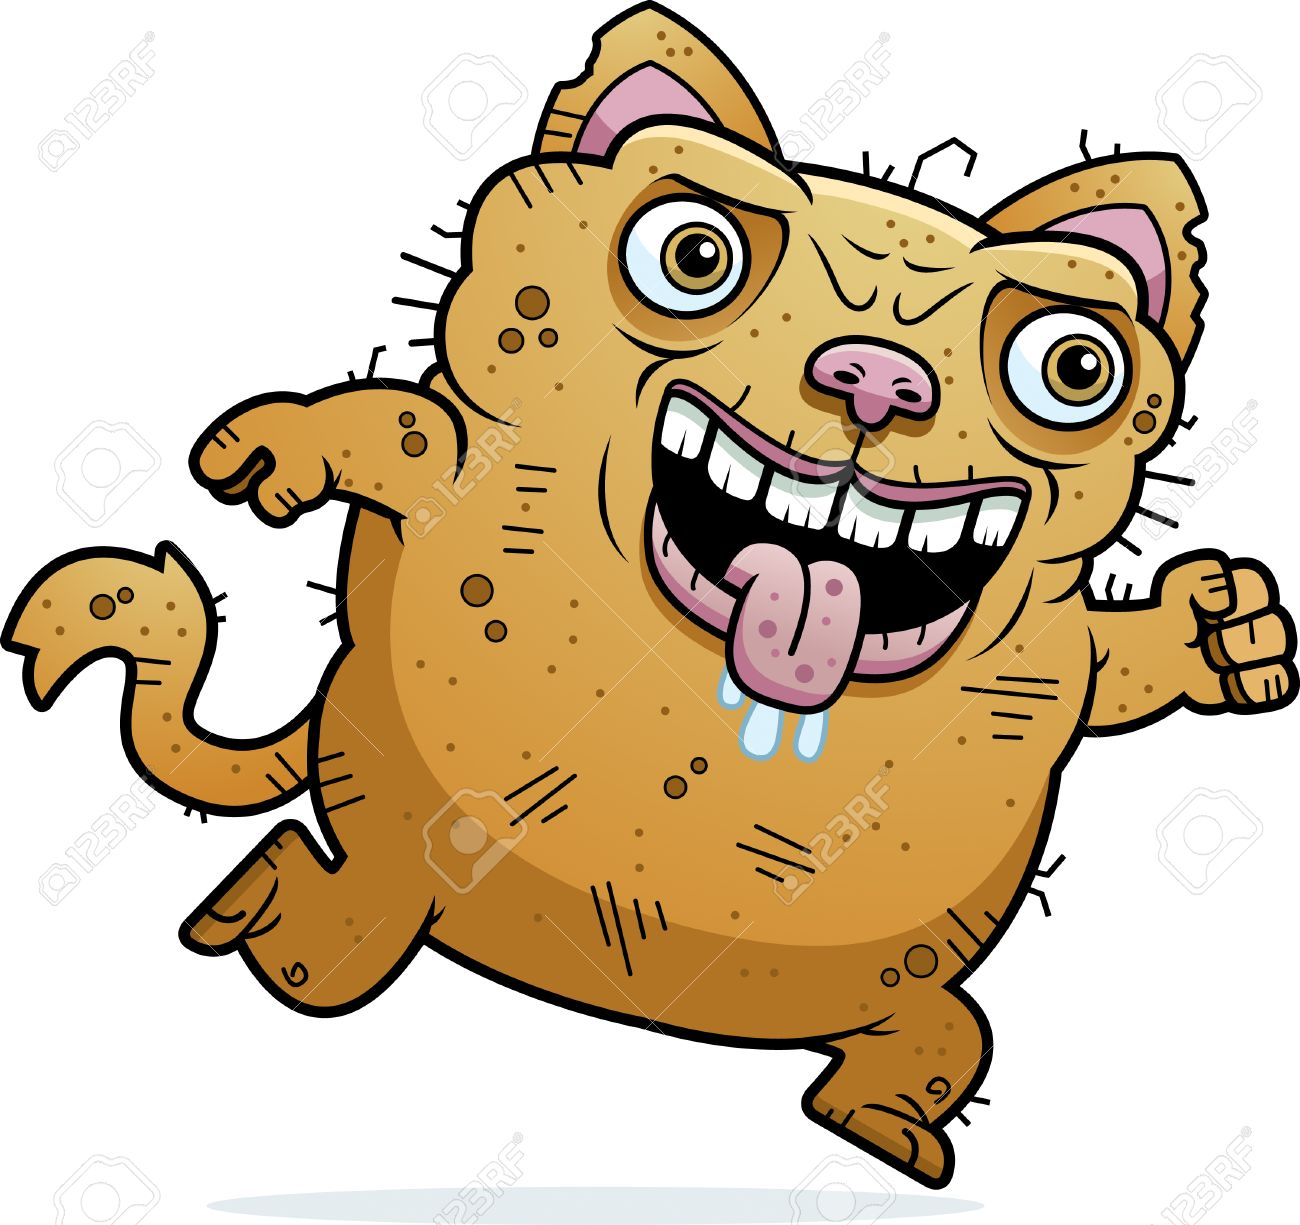 A Cartoon Illustration Of An Ugly Cat Running Royalty Free Cliparts Vectors And Stock Illustration Image 42751343